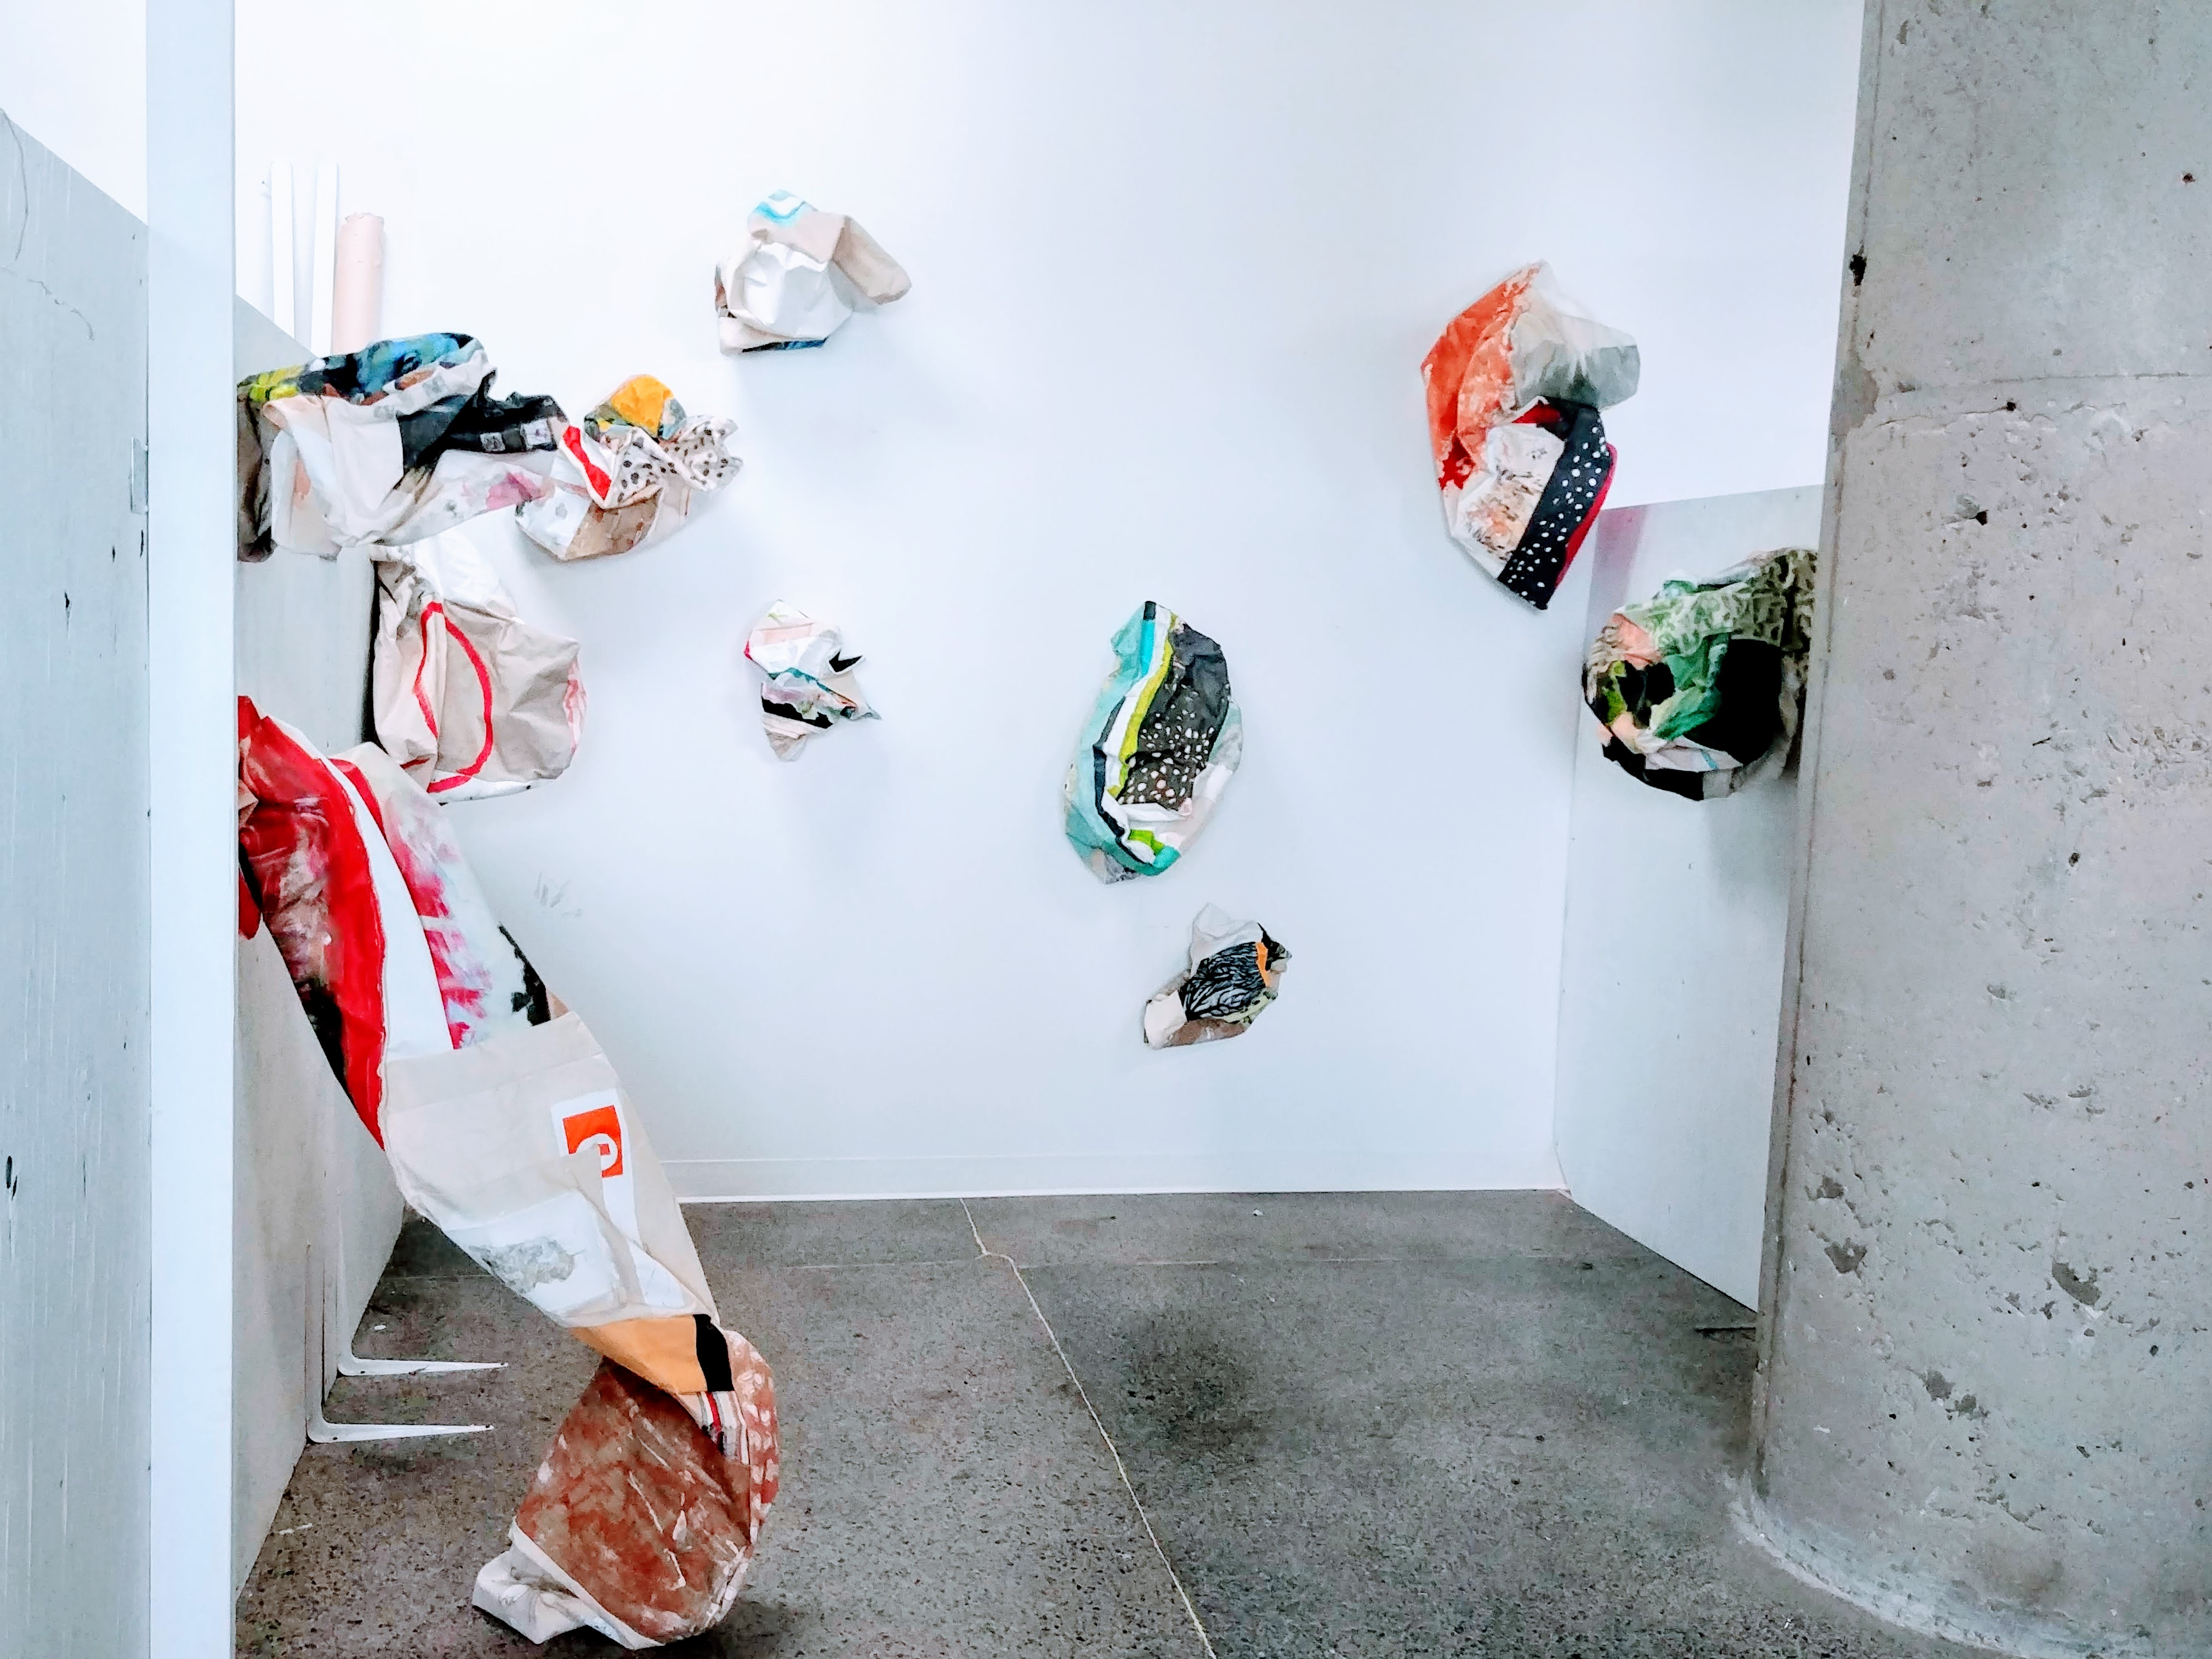 Jill Price, Undoings installation Shot,